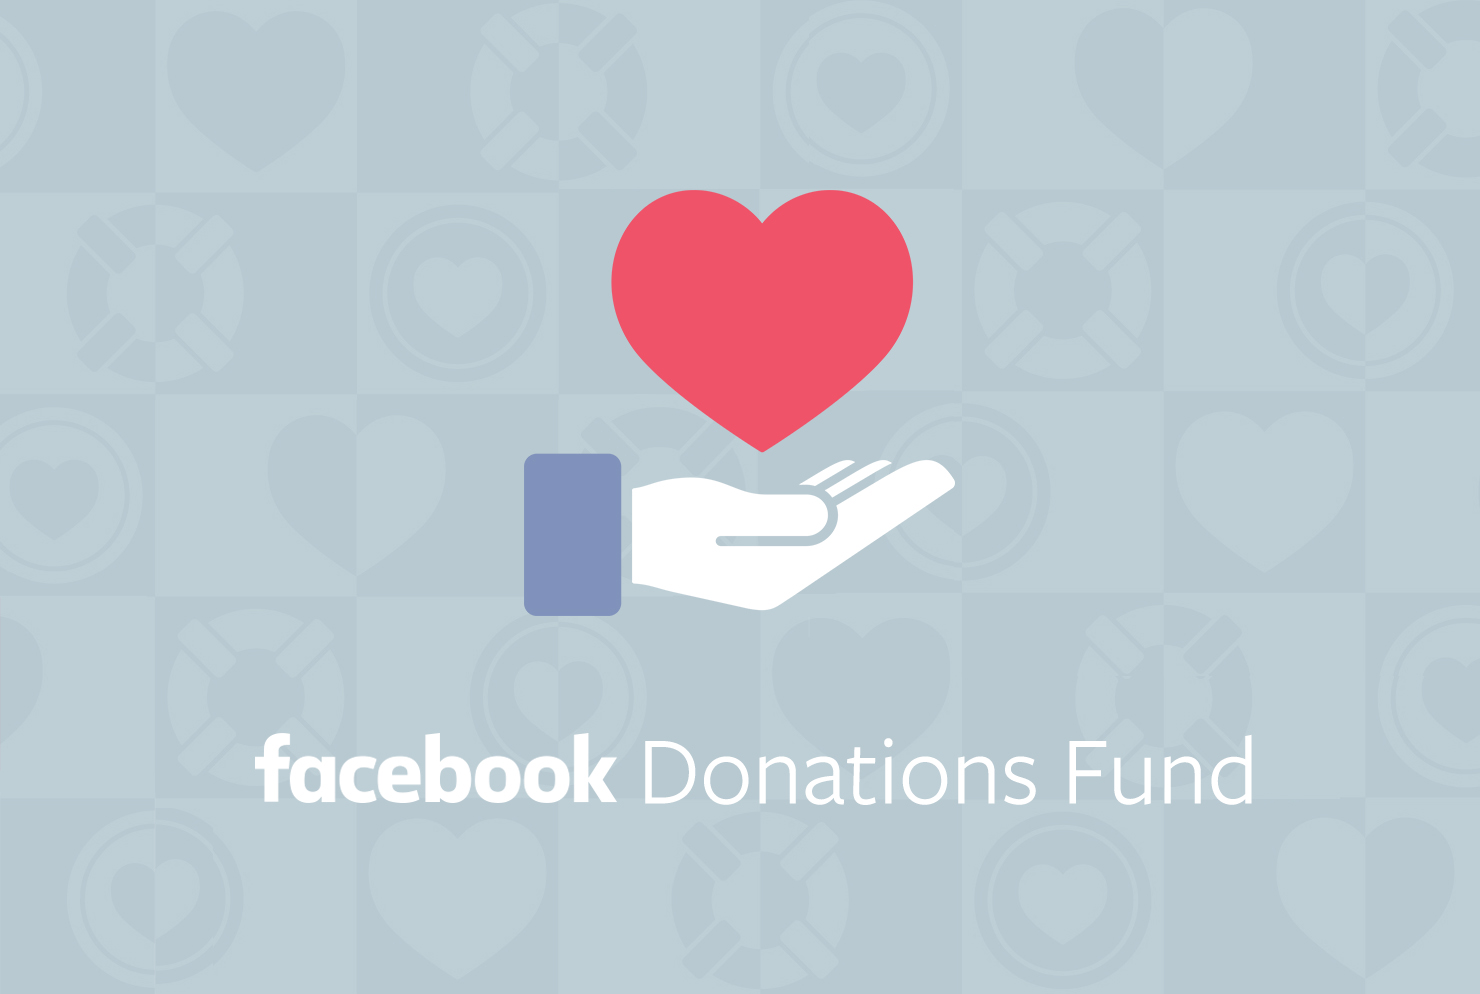 Facebook Giving - From time to time The Decameron Foundation, Inc. holds general and project specific fundraisers using the Facebook platform. As an active Facebook user, you can also start your own fundraisers for our cause that will allow your friends and family to donate.We are impressed on how easy and seamless this process is. To see our posts in your Facebook feed, please like our page.